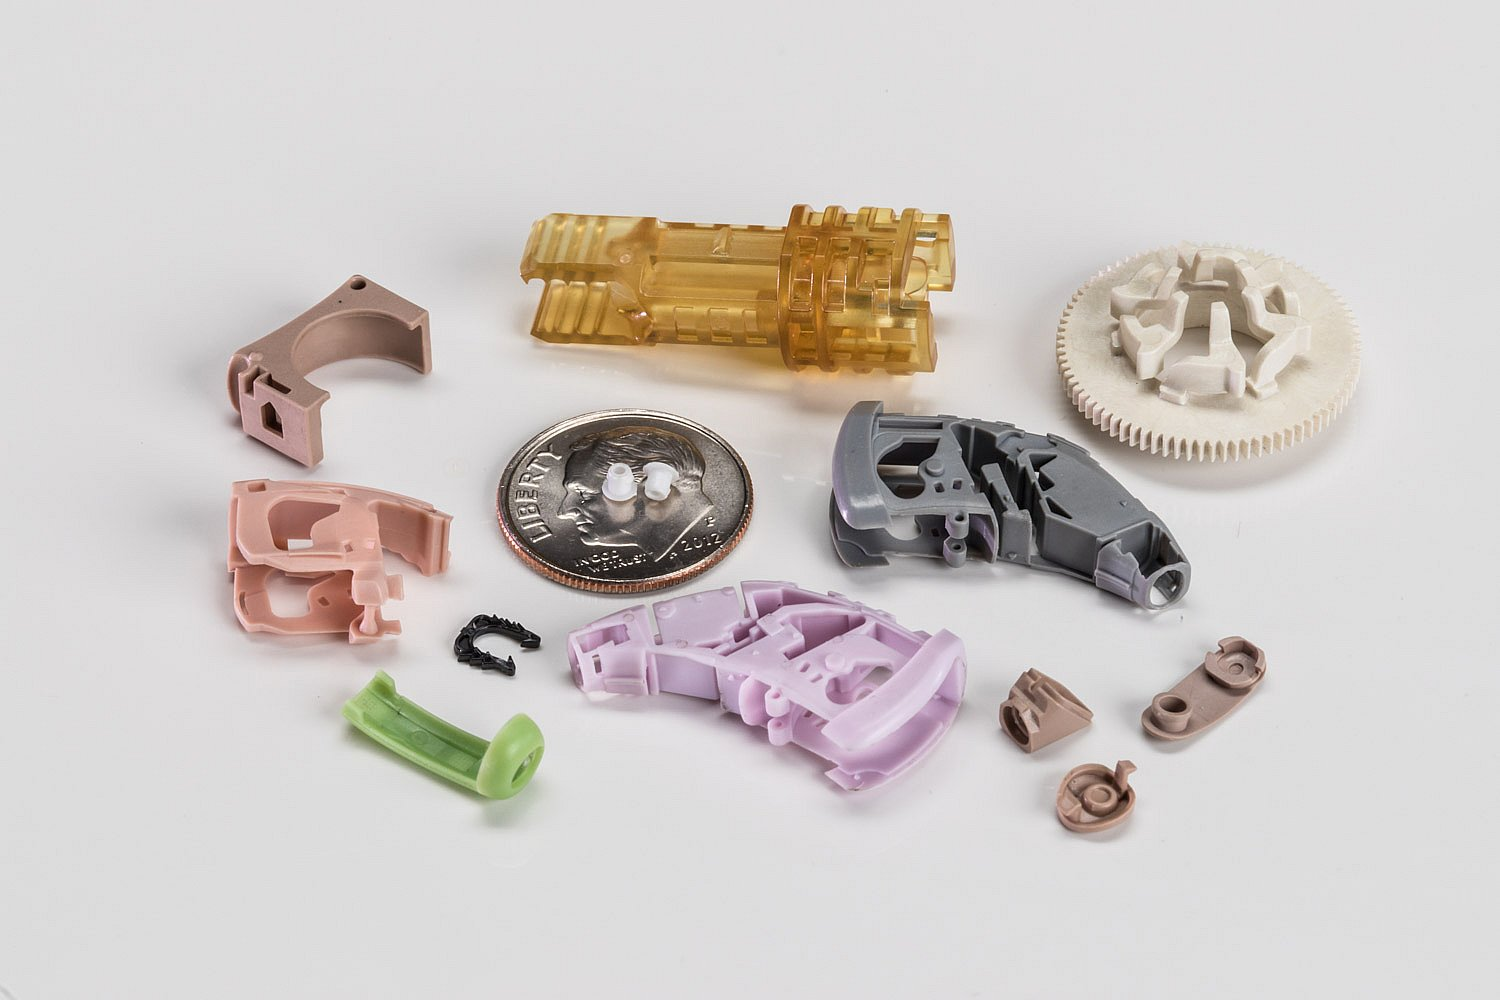 Mold-Tech Quality Mirco Molded Parts